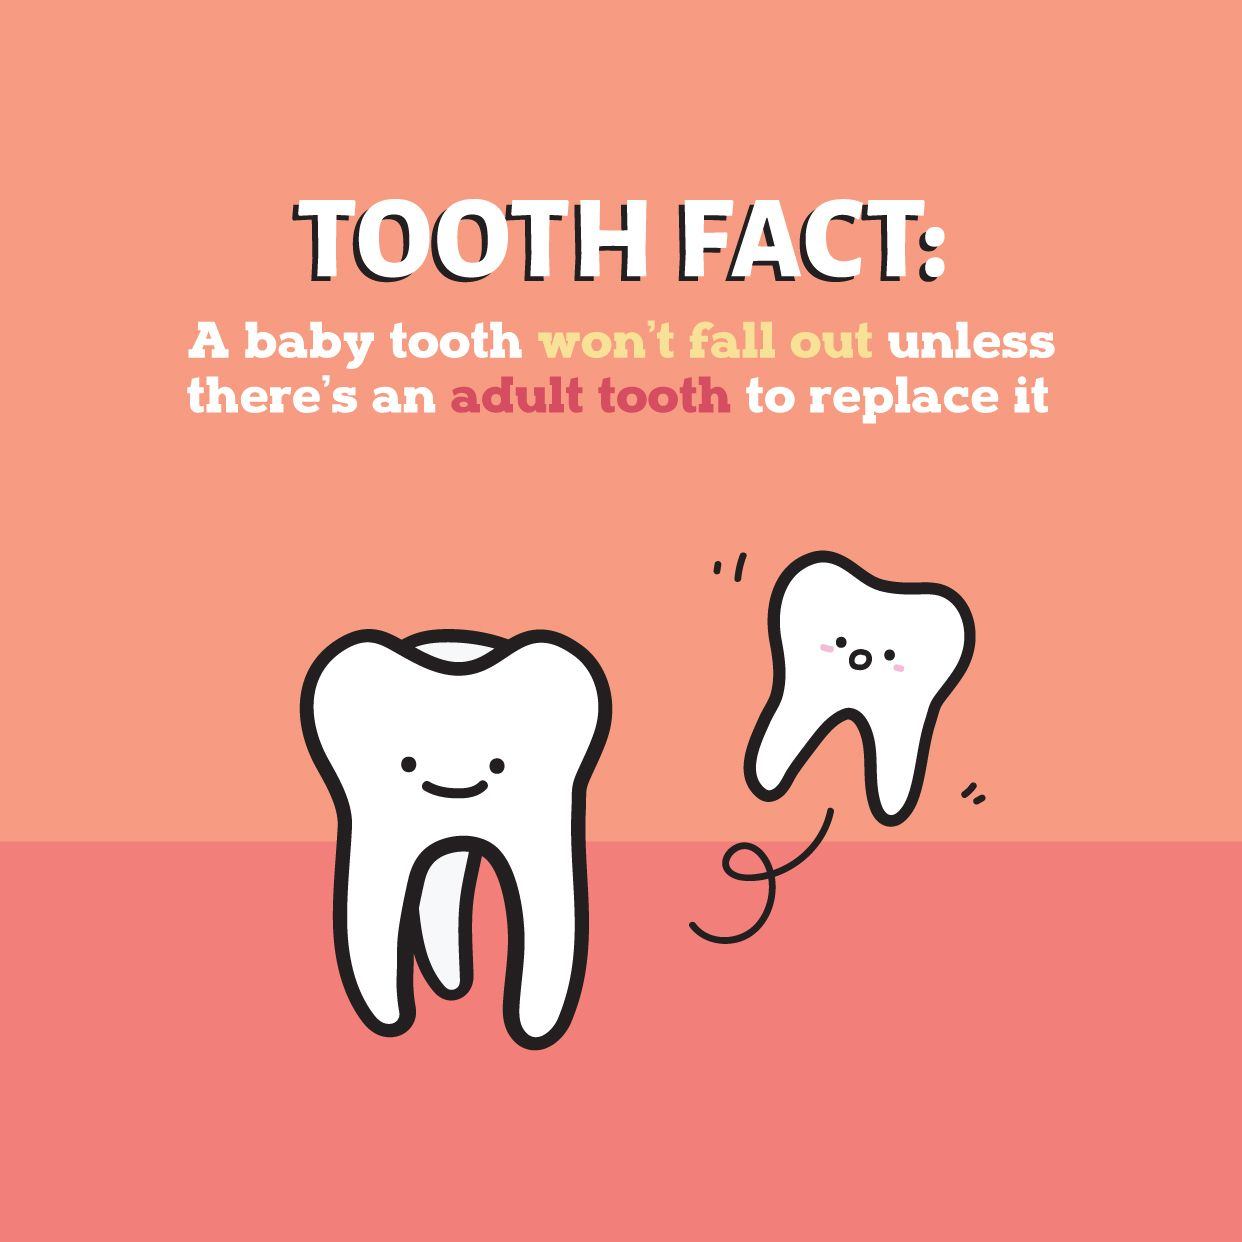 Most Baby Teeth Fall Out As A Result Of Permanent Teeth Pushing Up From Underneath If Your Child Has Any Accid Dental Facts Childrens Dental Health Dental Fun